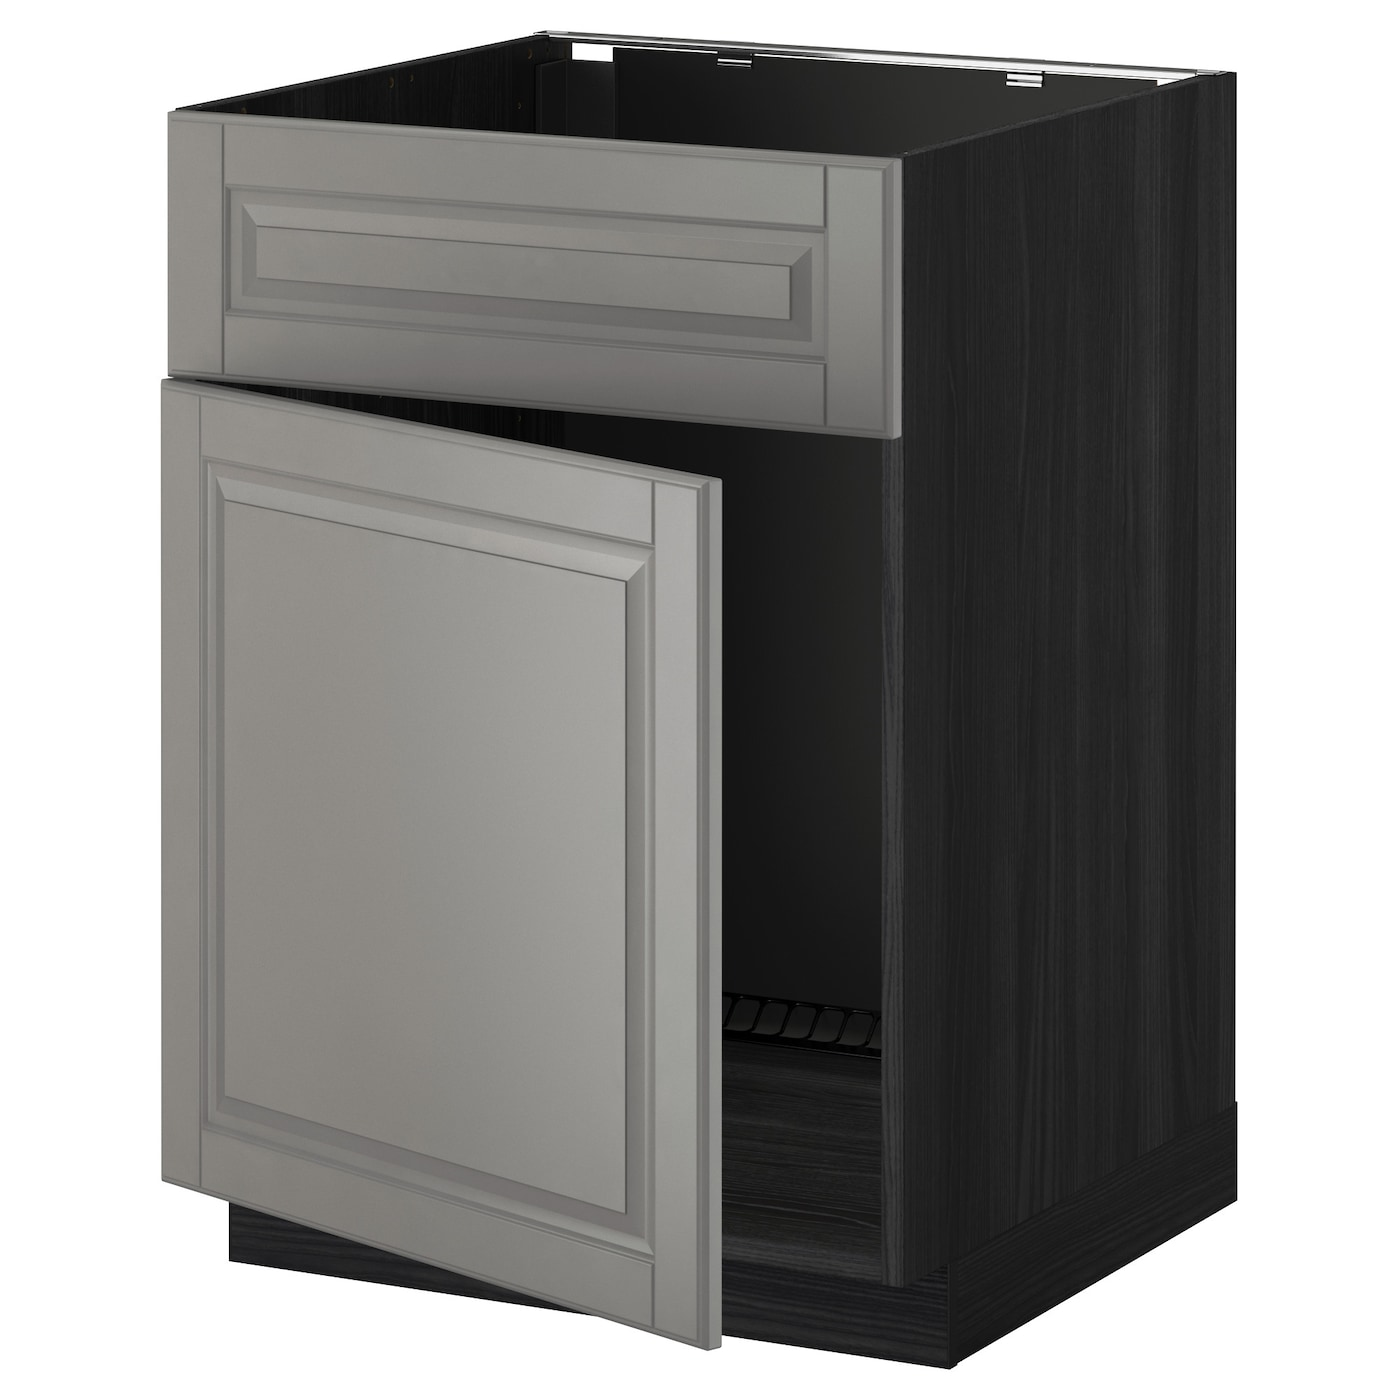 Metod base cabinet f sink w door front black bodbyn grey for Black cabinet with doors